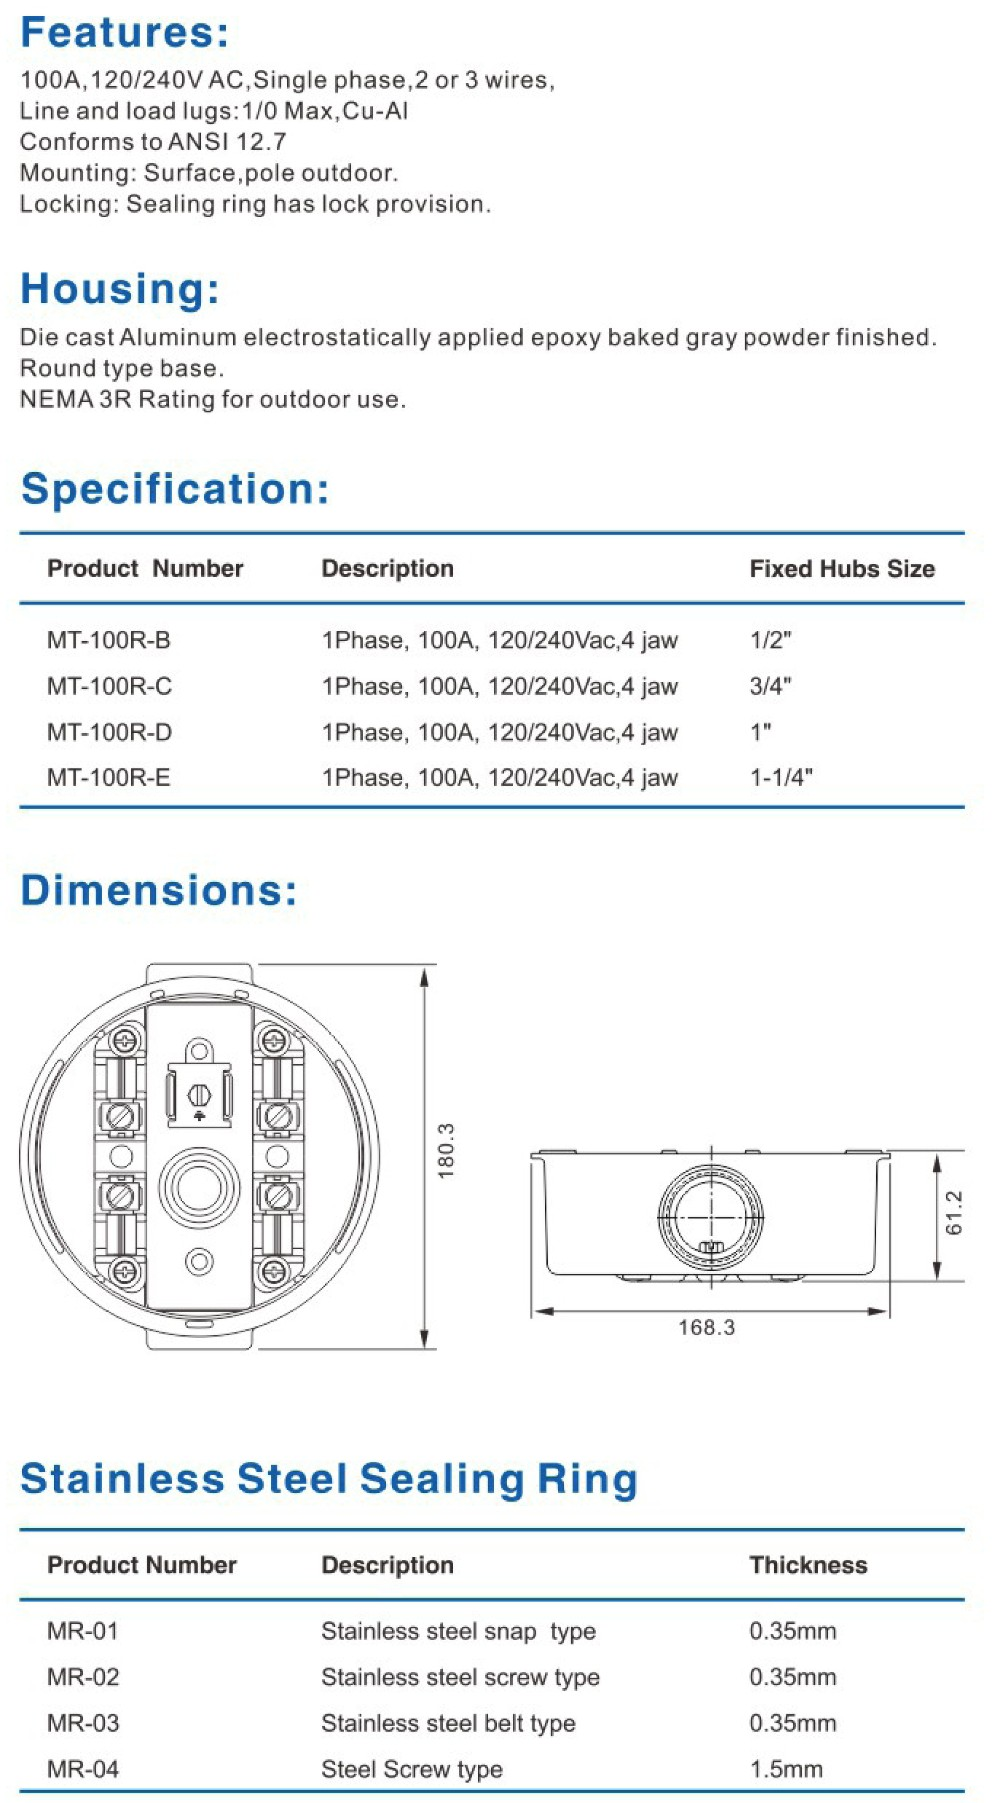 wiring color pioneer diagram x5500bh full hd version diagram x5500bh - louv- diagram.jamaisvu-jv.it  diagram database and images